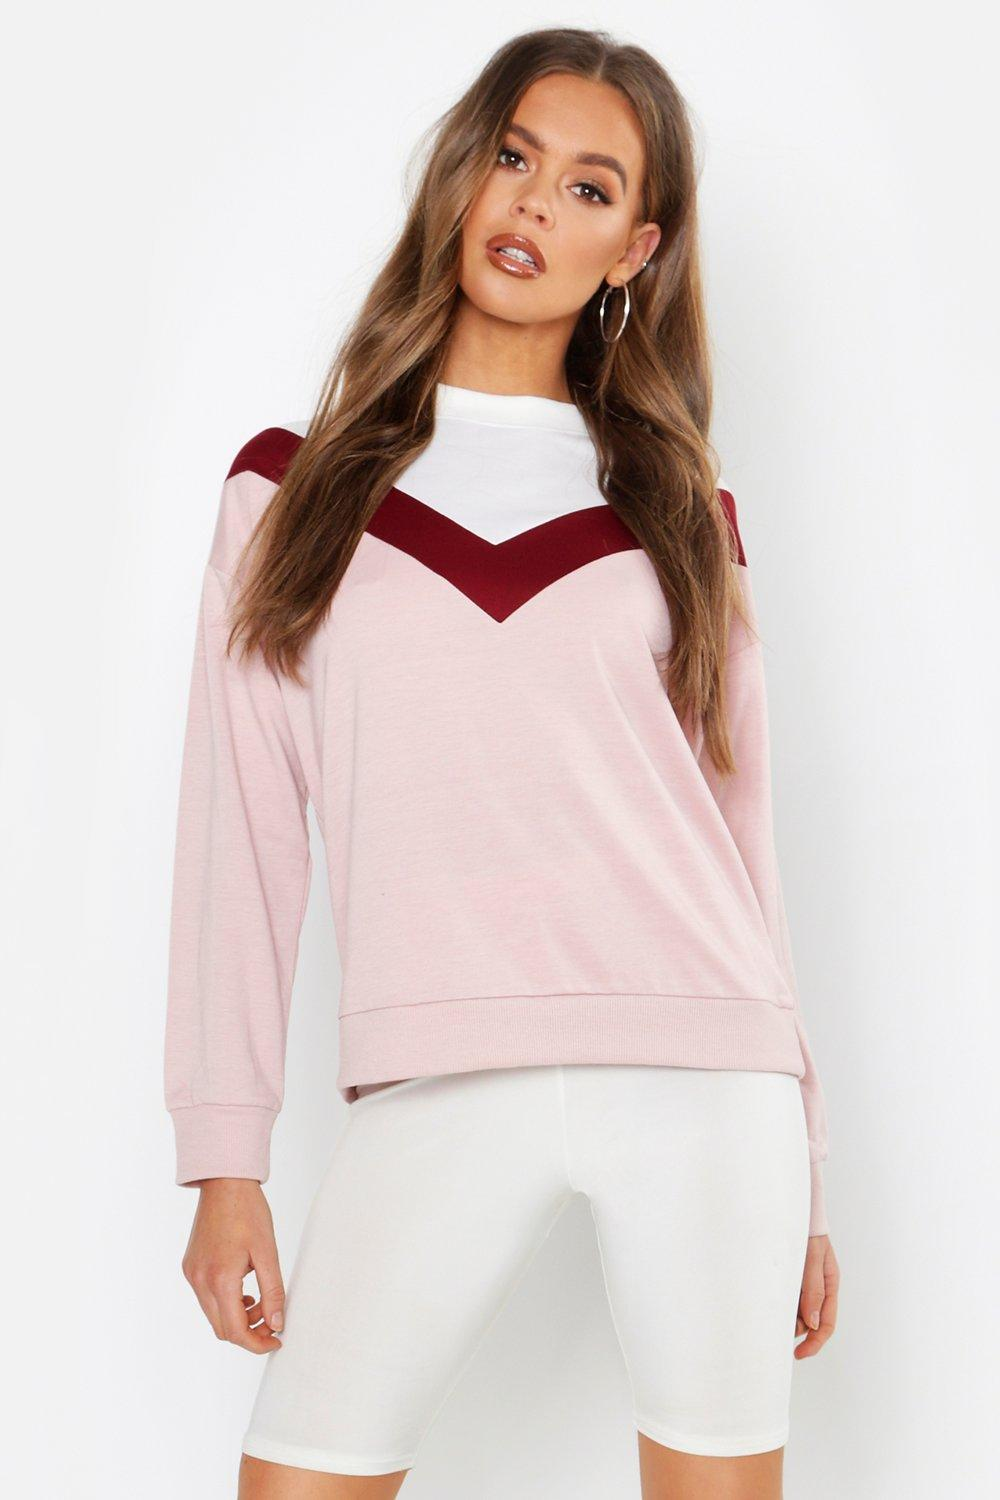 Womens Chevron Contrast Panel Sweatshirt - blush - XS, Blush - Boohoo.com